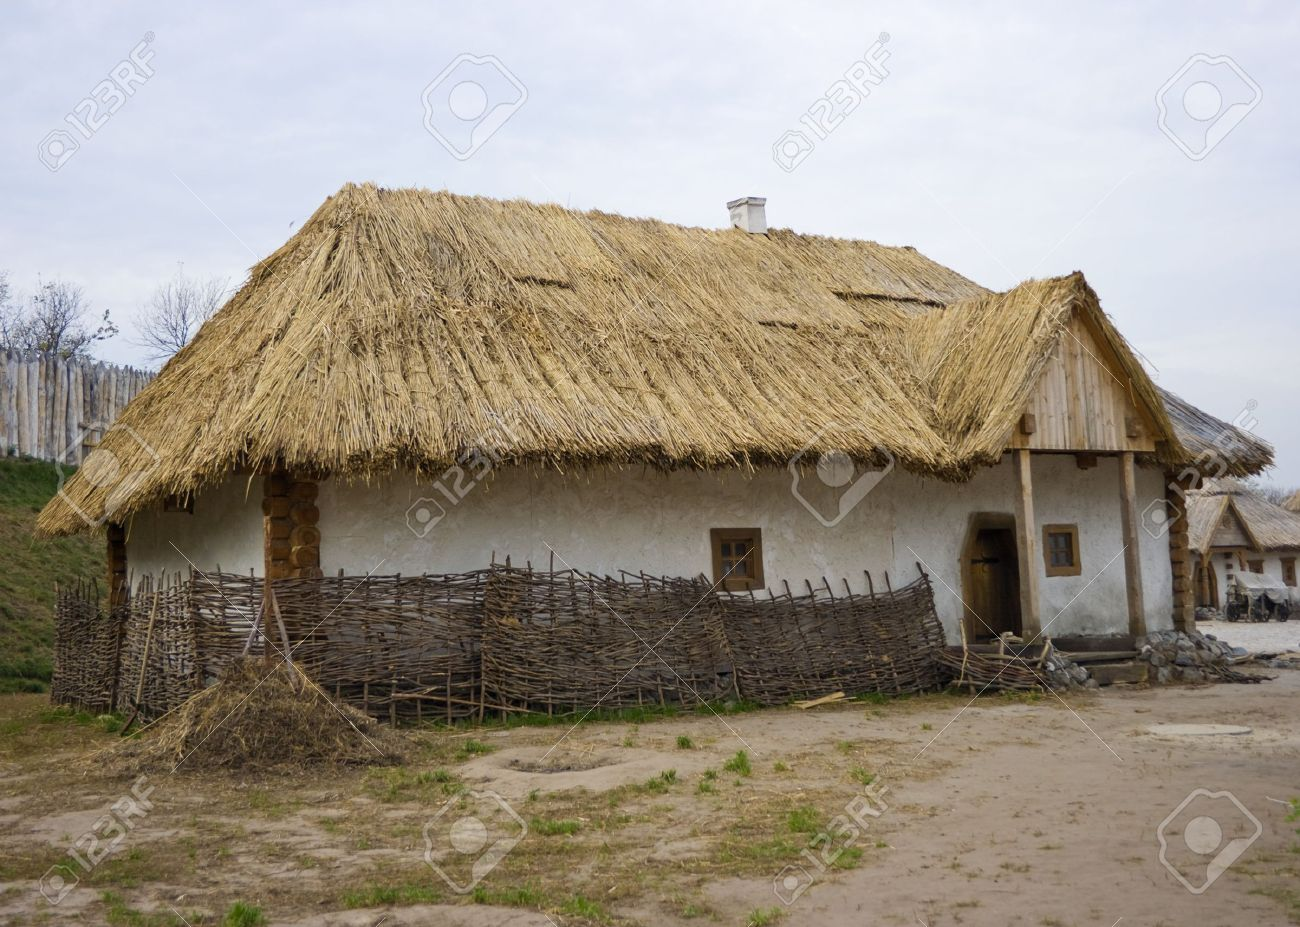 thatched roof old traditional ukrainian house with thatched roof - Thatched Rood